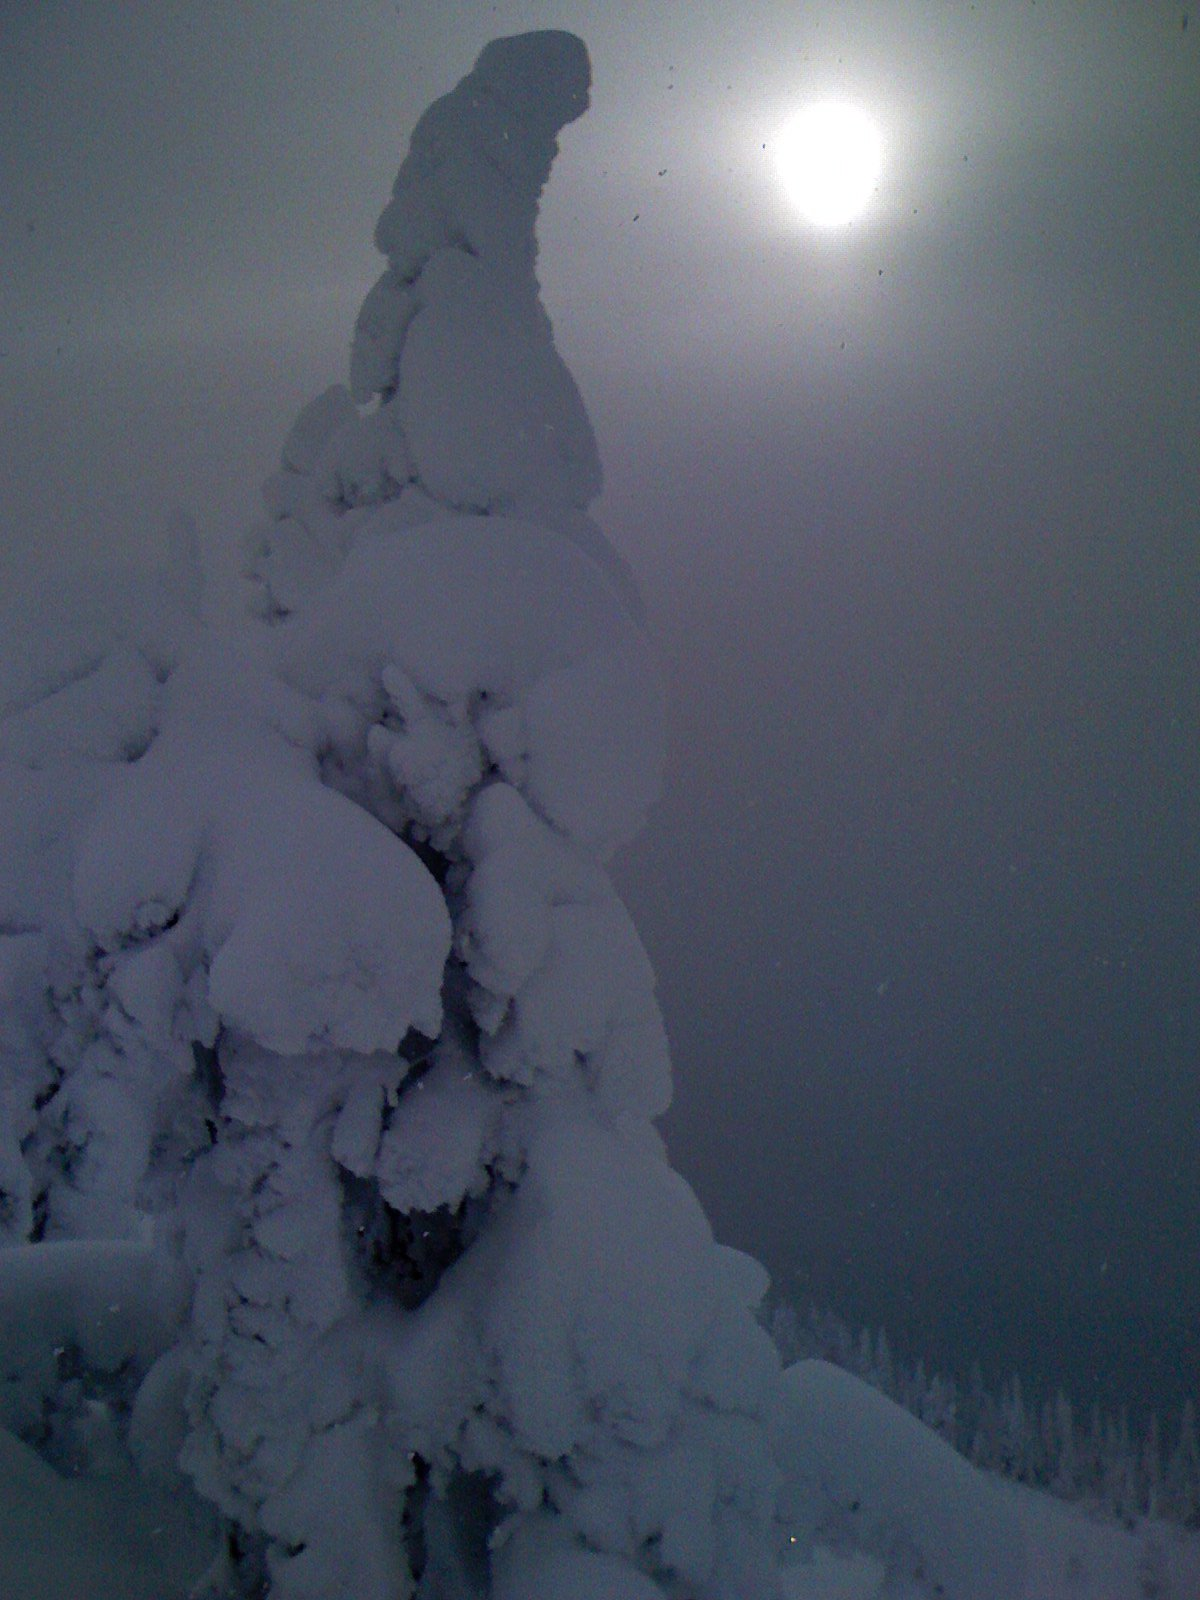 A tree covered in snow